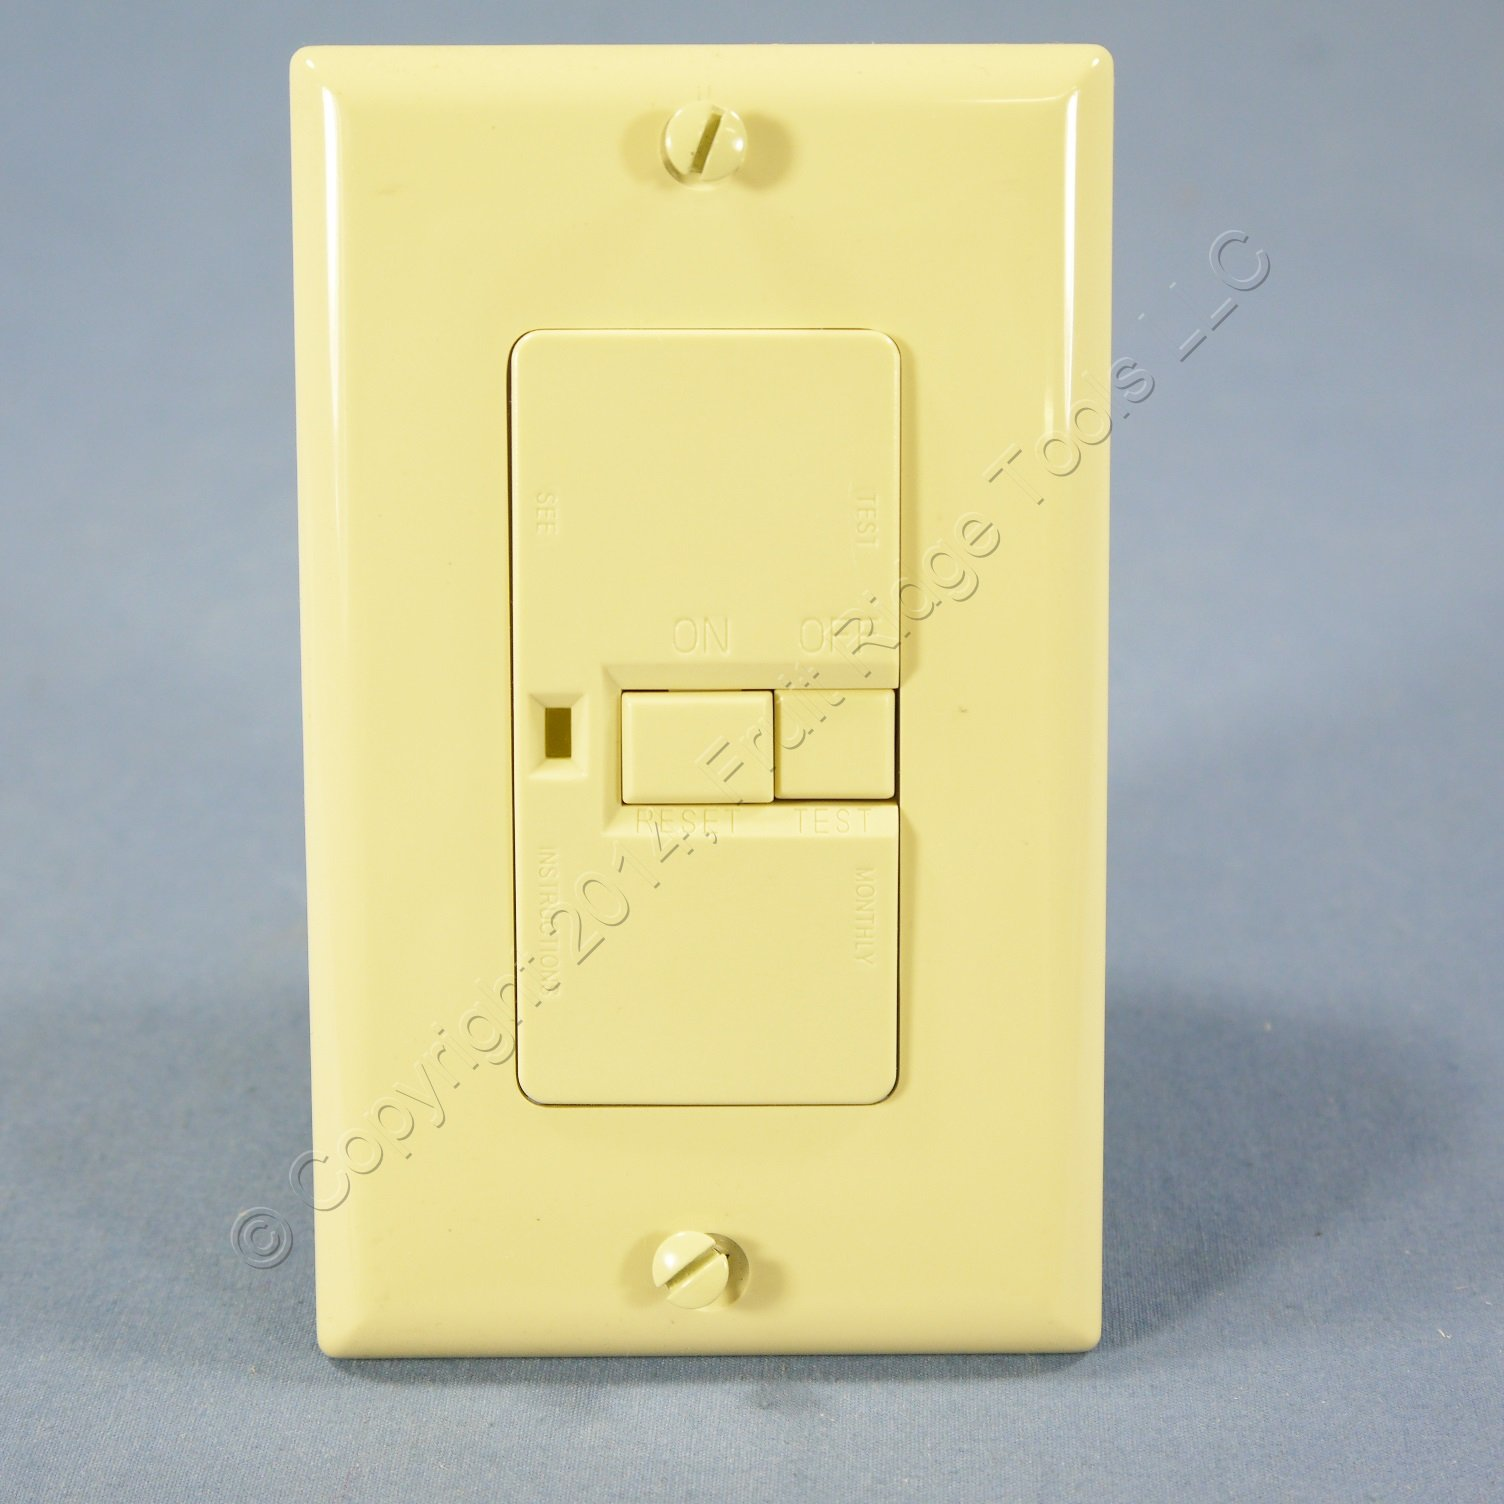 Cooper Wiring Commercial Specification Grade Ivory Blank Face Motor Control Switch GFCI 20A 125V XDGF20V